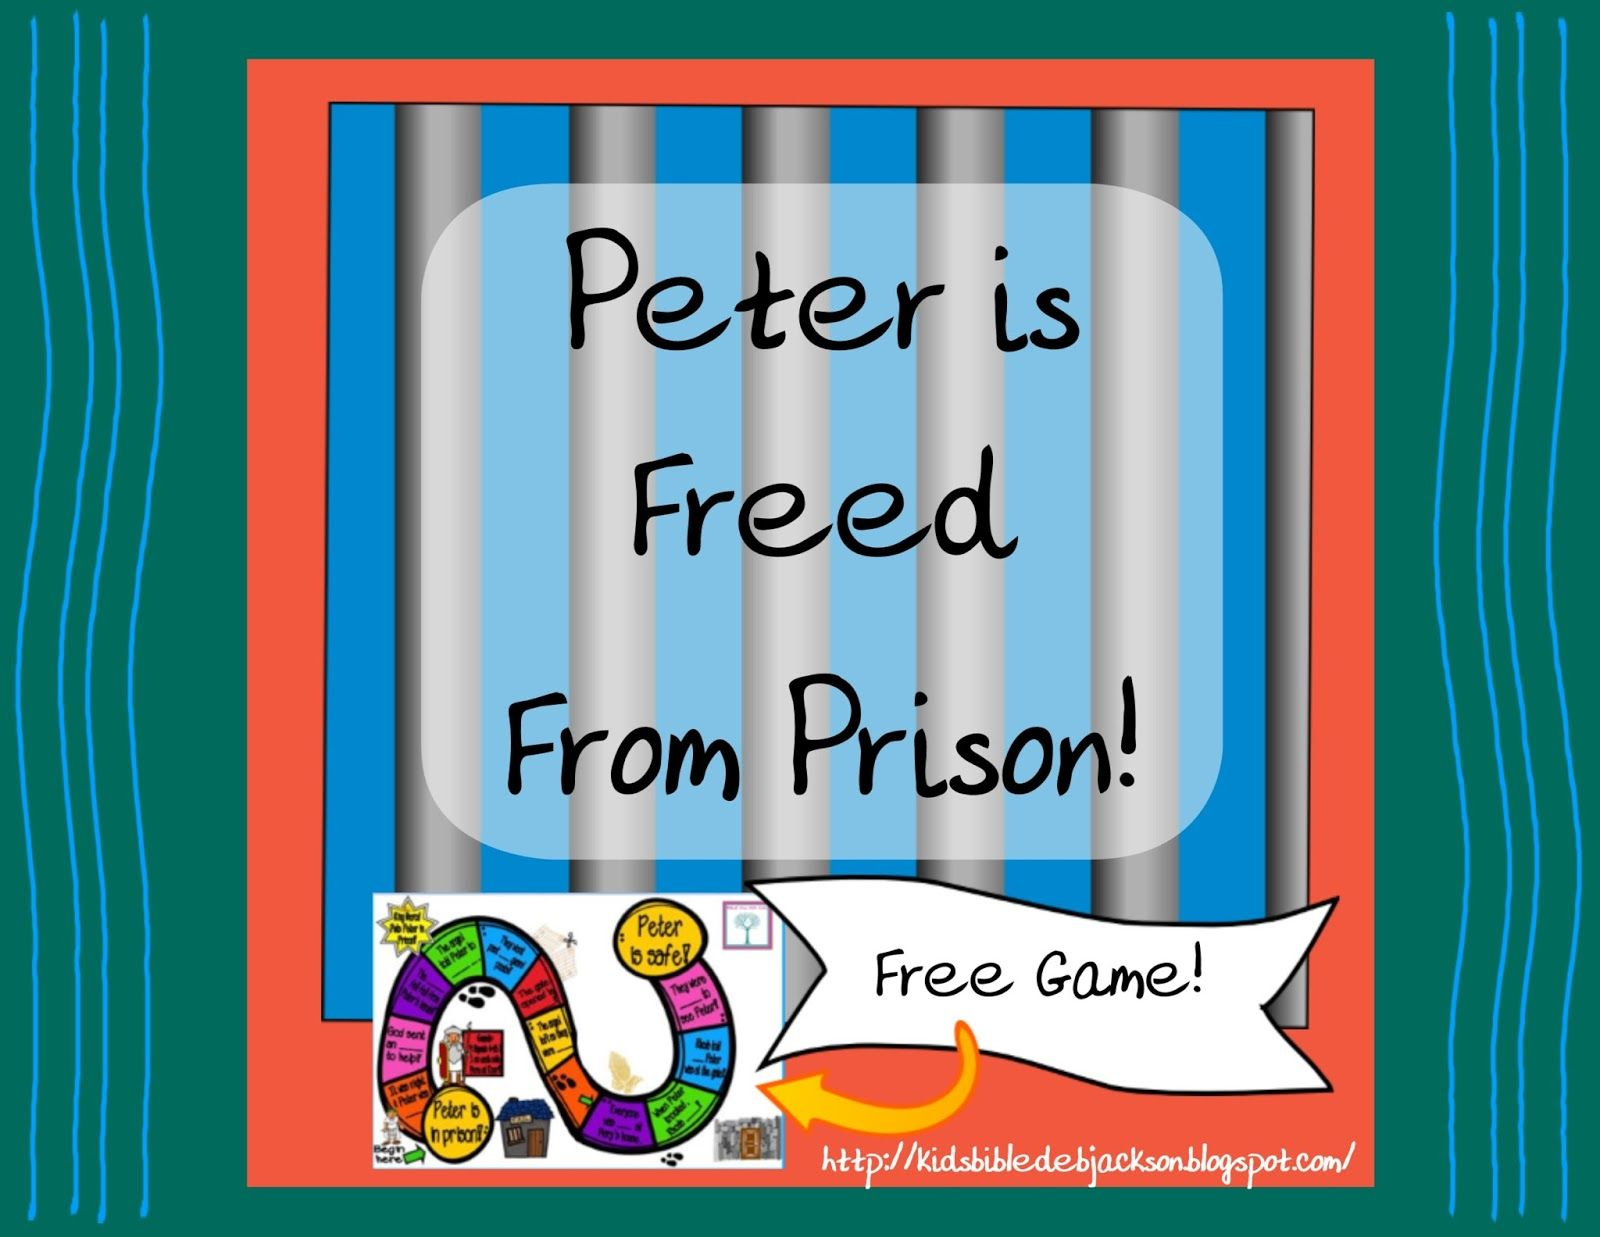 Peter Freed From Prison